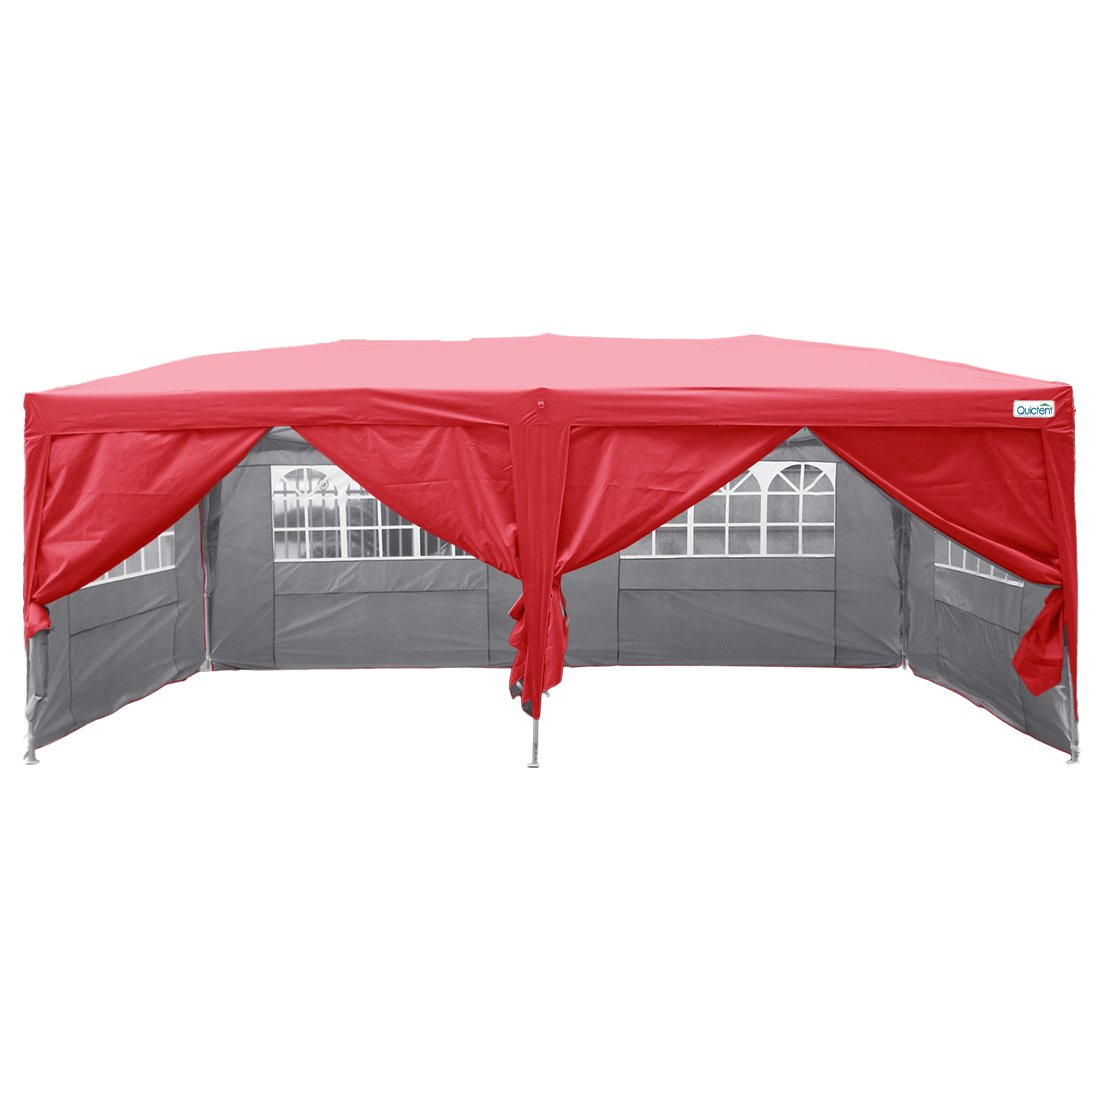 Quictent Silvox Waterproof 20x10' EZ Pop Up Canopy Gazebo Party Tent Red Portable Folding Frame Ez Set Up Removable sides With Roller Bag